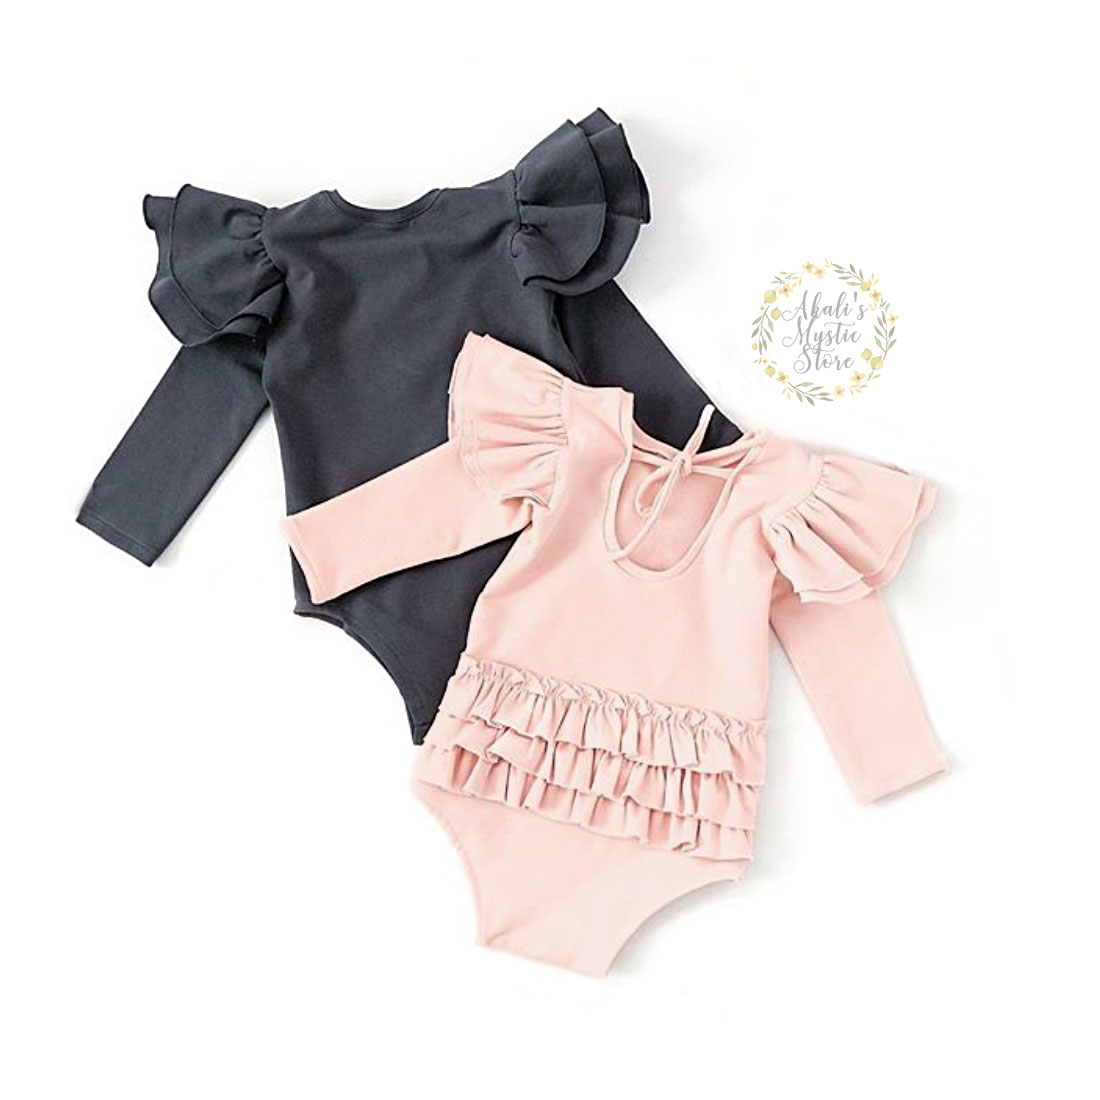 0-18M Autumn Baby Girl Rompers Newborn Infant Baby Ruffles Bow Jumpsuit Playsuit Long Sleeve Solid Baby Clothes Costumes